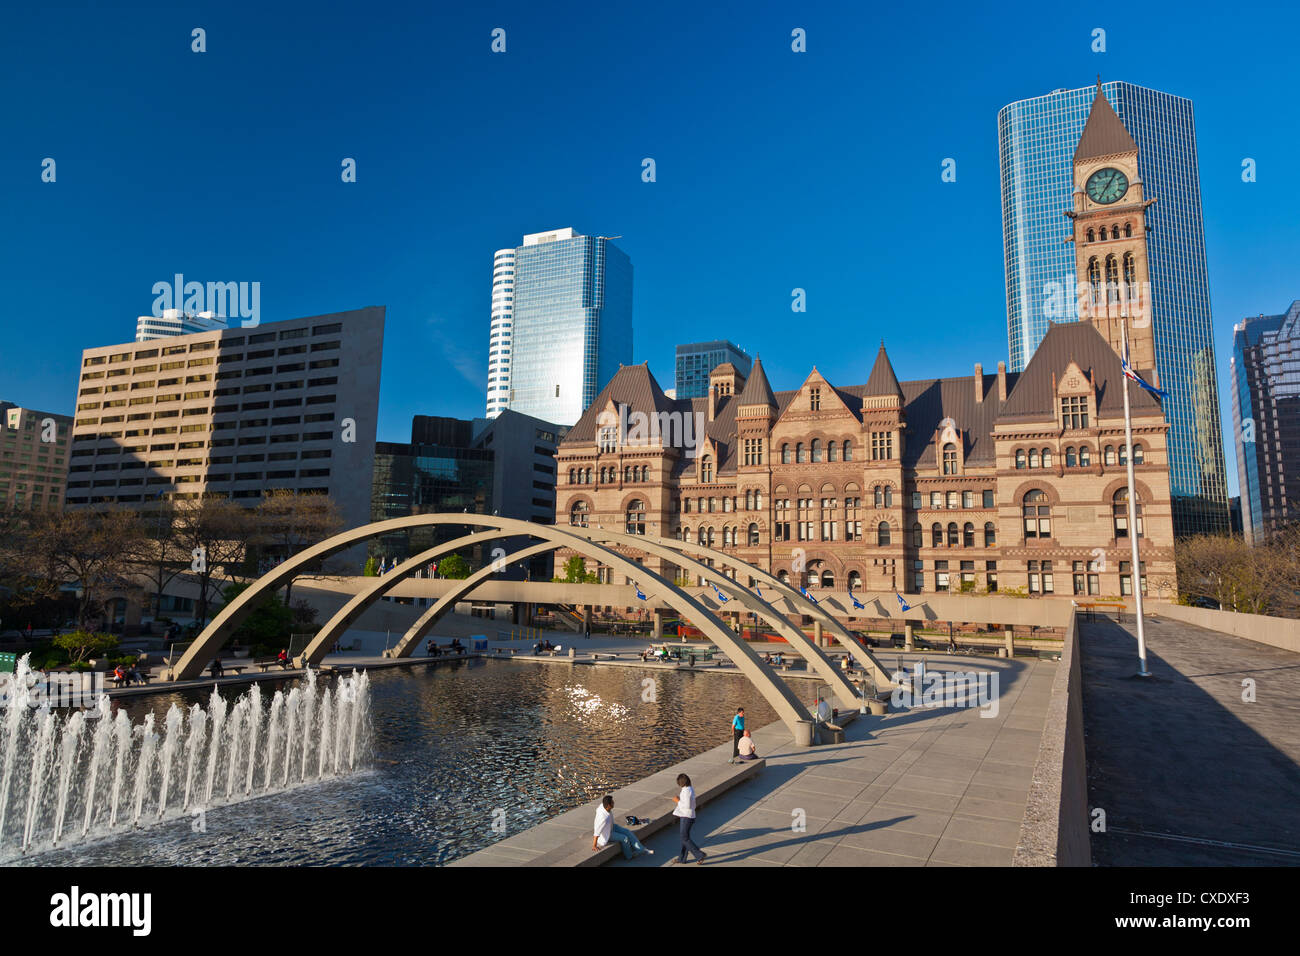 Freedom Arches, Nathan Phiilips Square, in front of City Hall, Toronto, Ontario, Canada, North America - Stock Image